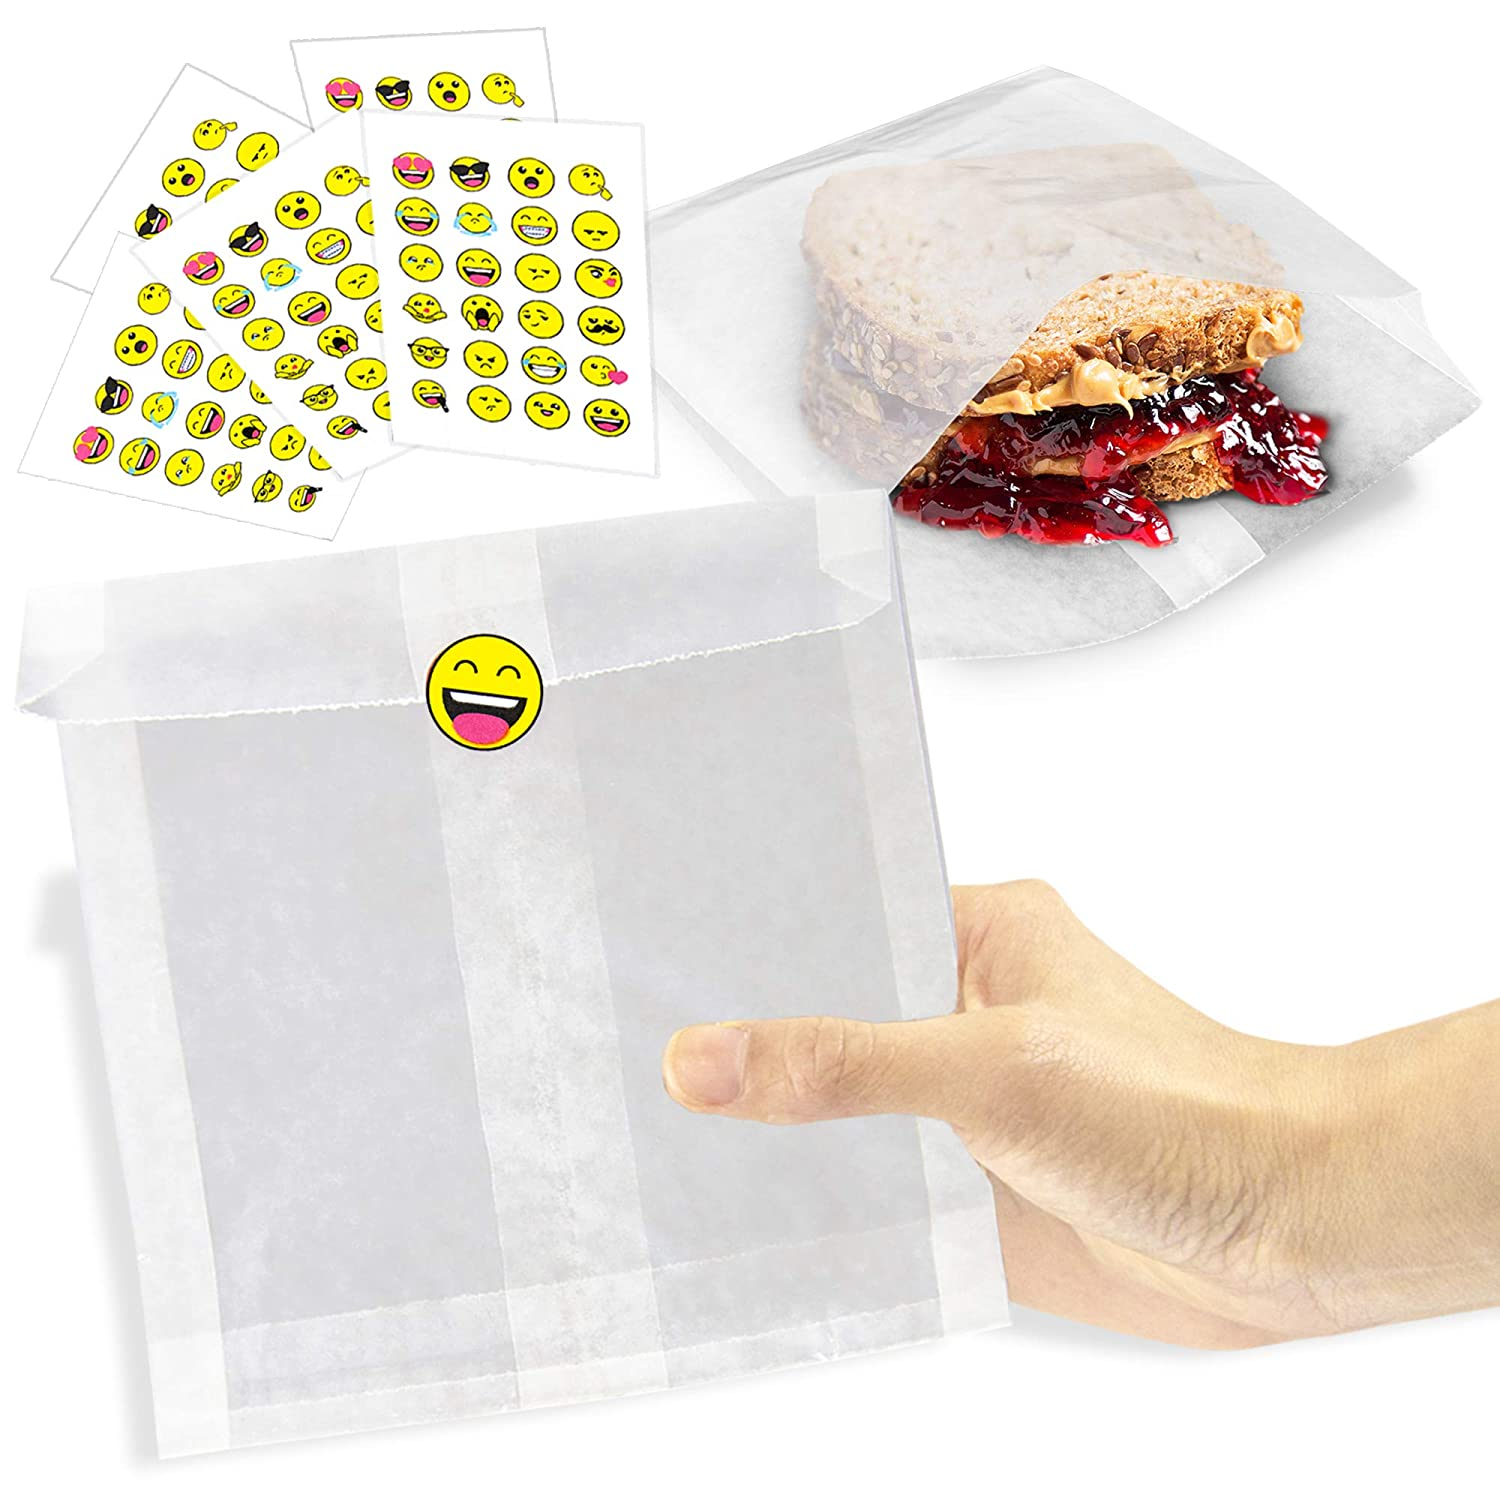 [200 Bags and 200 Stickers Pack] 7 x 6 x 1 Inch Wet Wax Paper Sandwich Bags with Emoji Kid Sticker Label - Biodegradable White Glassine Bag Sheet, Food Grade Grease Resistant for Snacks, Bakery Bread